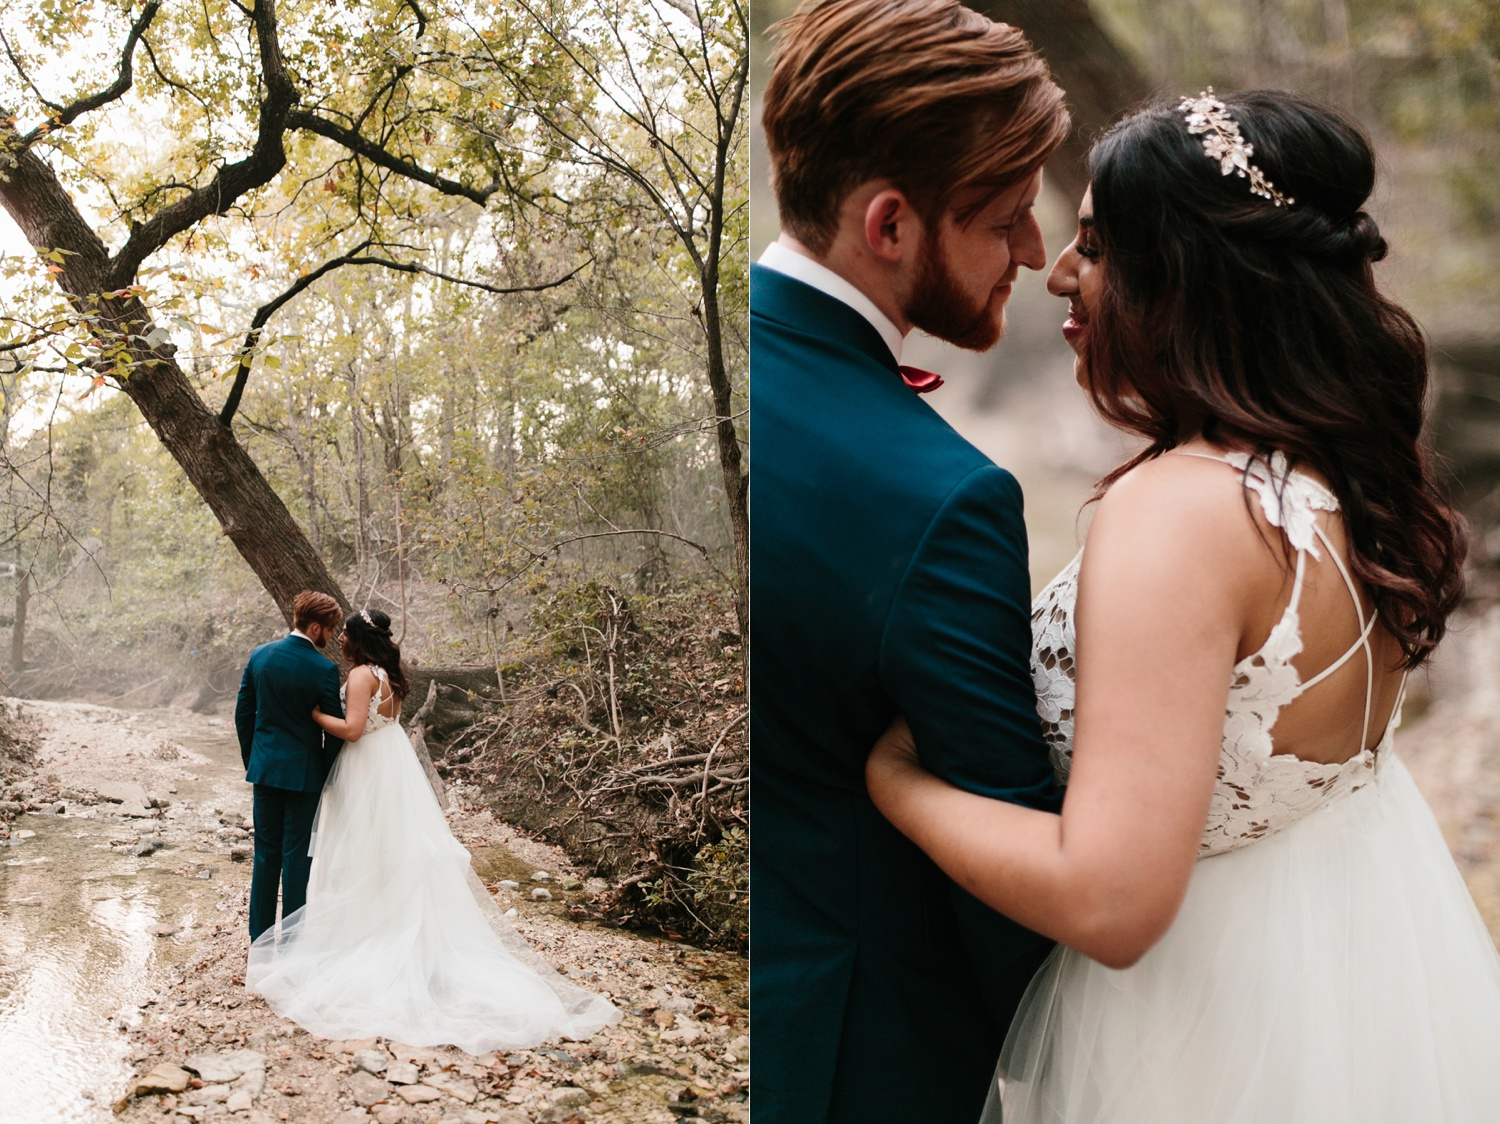 Grant + Lysette | a vibrant, deep burgundy and navy, and mixed metals wedding at Hidden Pines Chapel by North Texas Wedding Photographer Rachel Meagan Photography 262